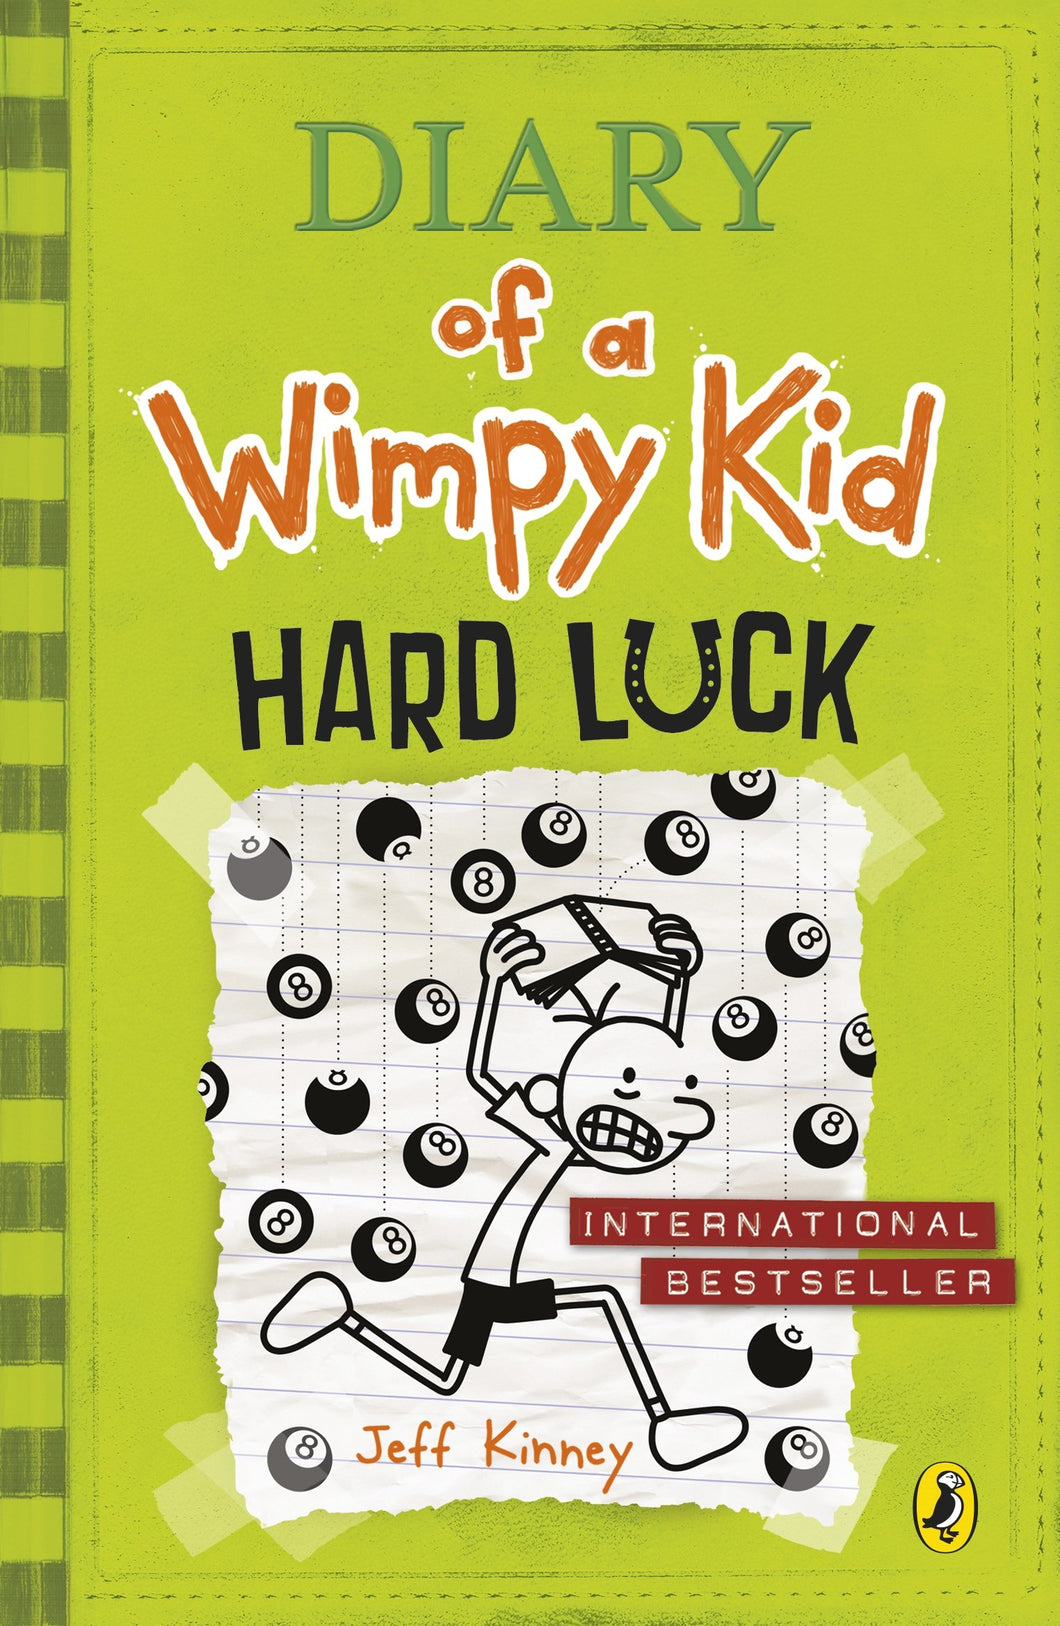 Diary of a Wimpy Kid: Hard Luck (#8)